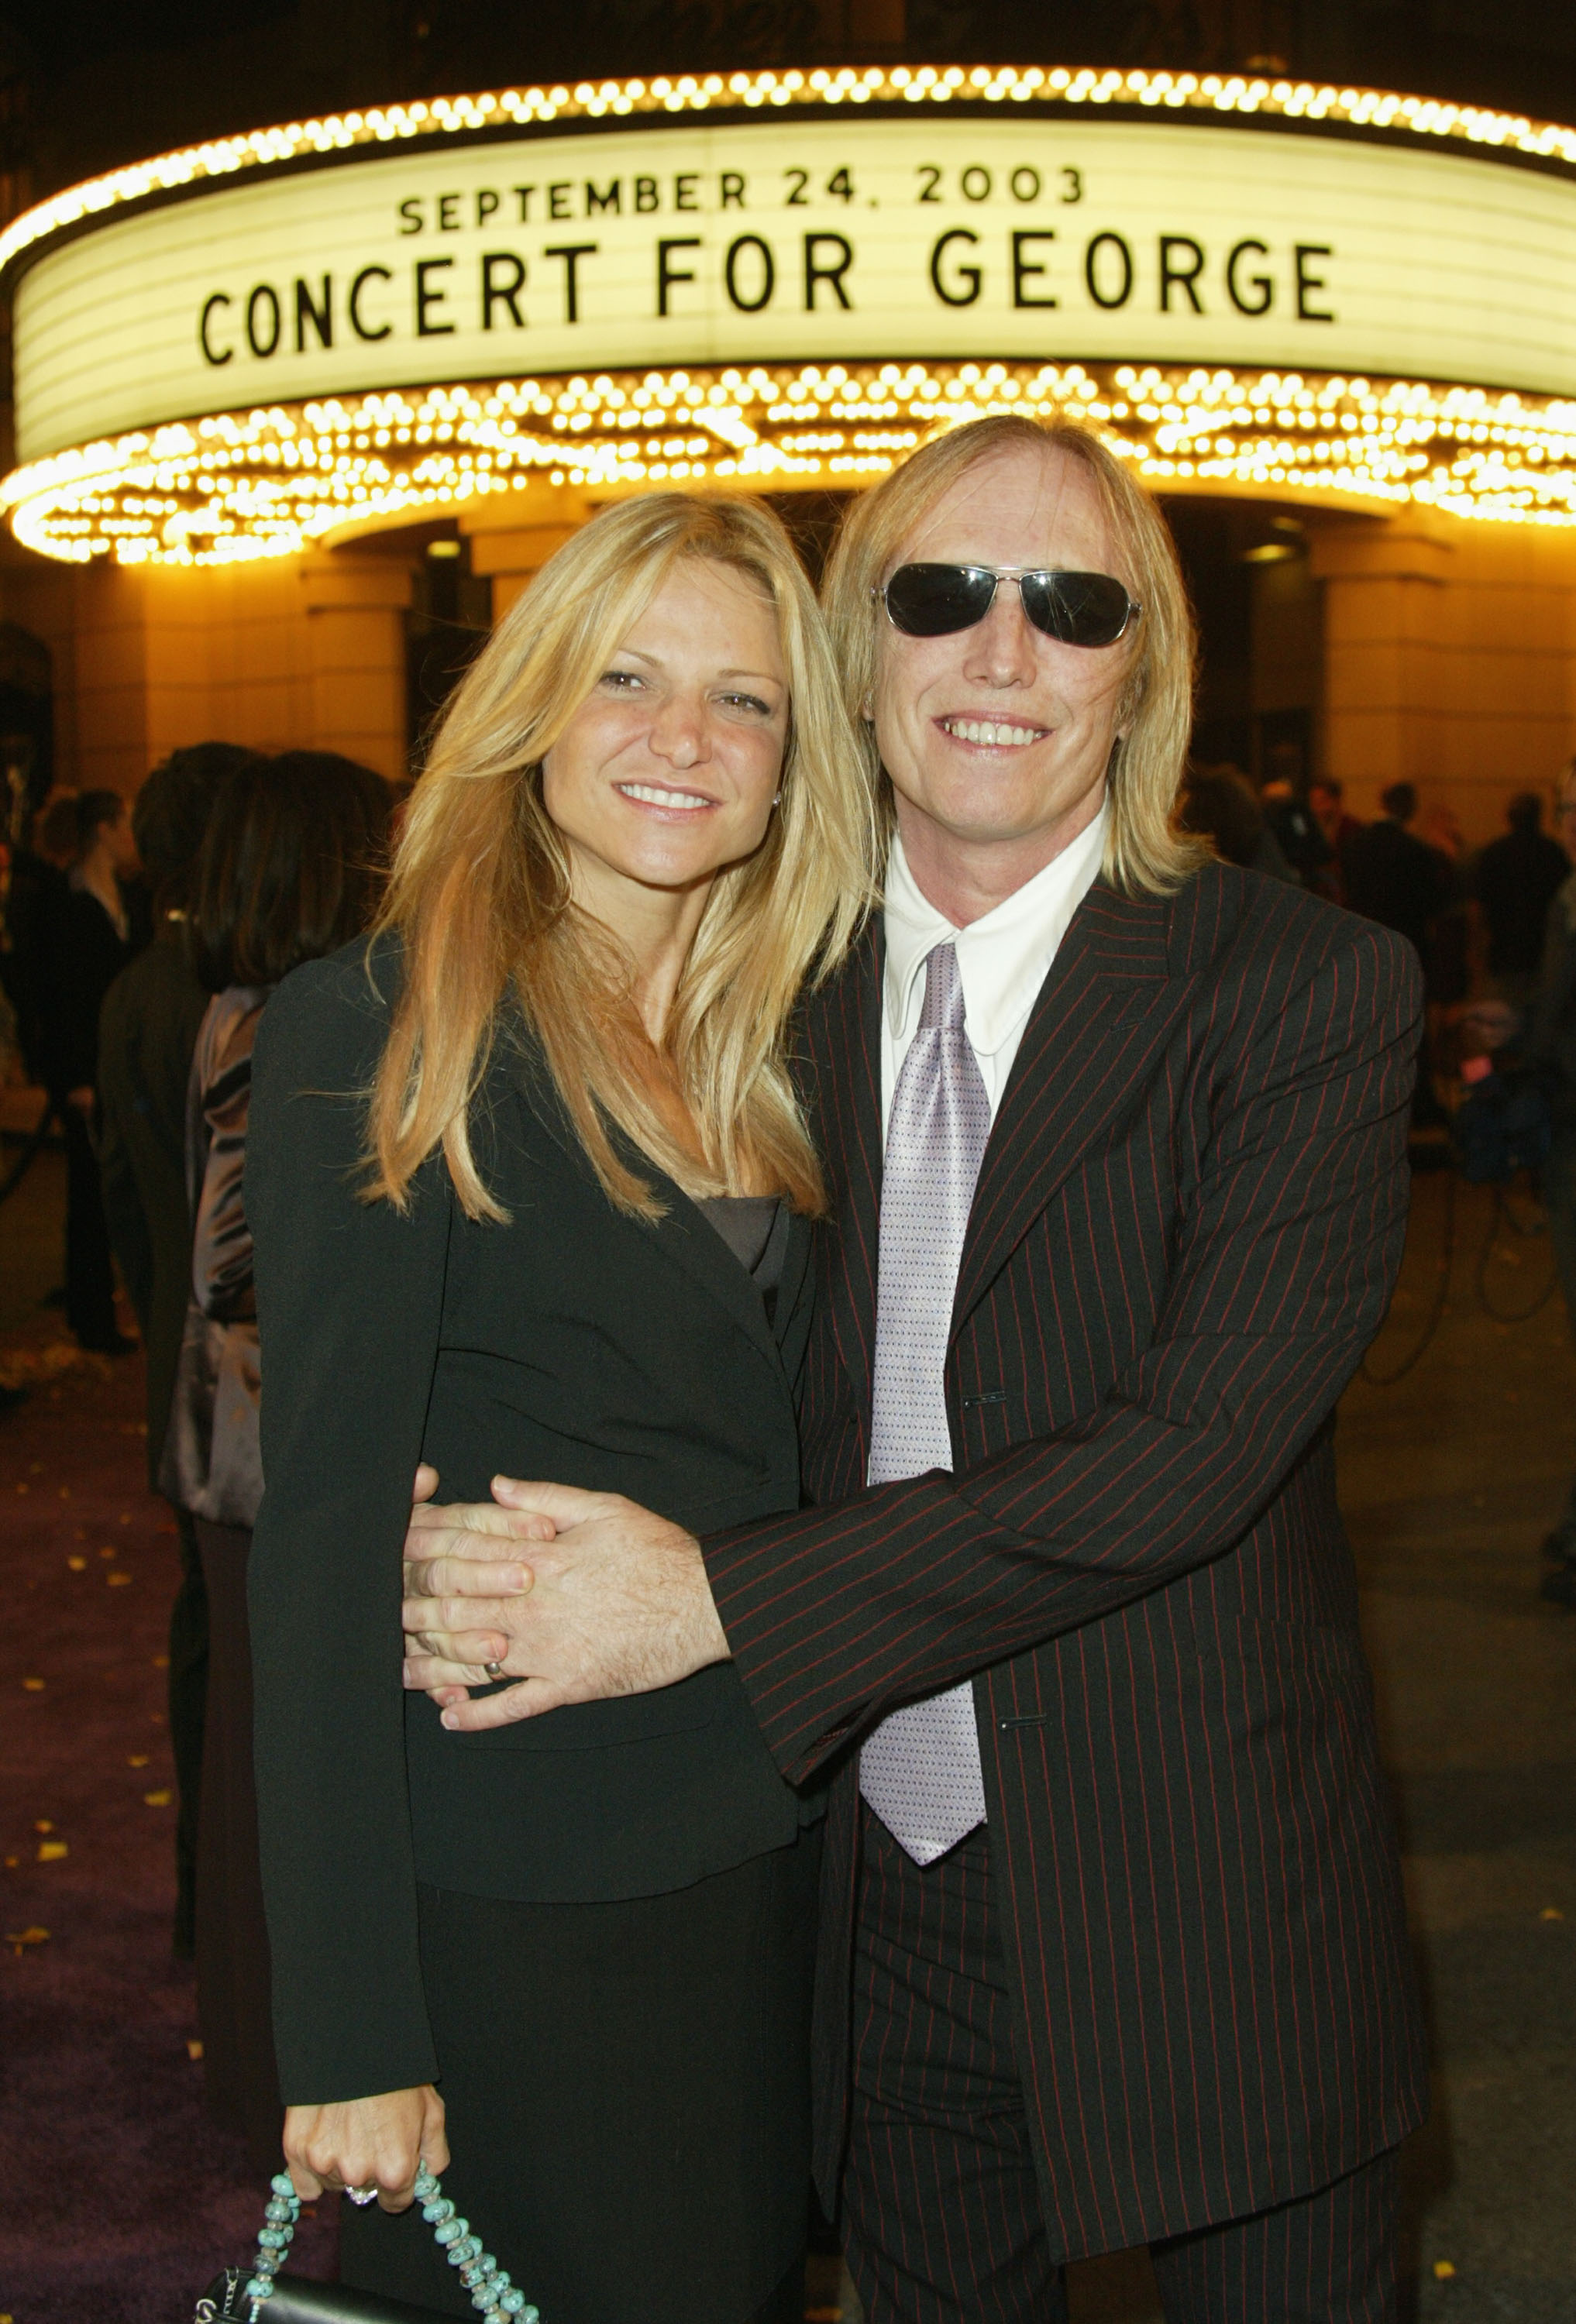 """Musician Tom Petty and his wife Dana York arrive for a special screening at the Steven J. Ross Theater at Warner Bros. Studios of the film ''Concert for George"""" September 24, 2003 in Burbank, California. The documentary celebrates the music of former Beatle George Harrison through performances by legendary musicians. (Photo by Frazer Harrison/Getty Images)"""